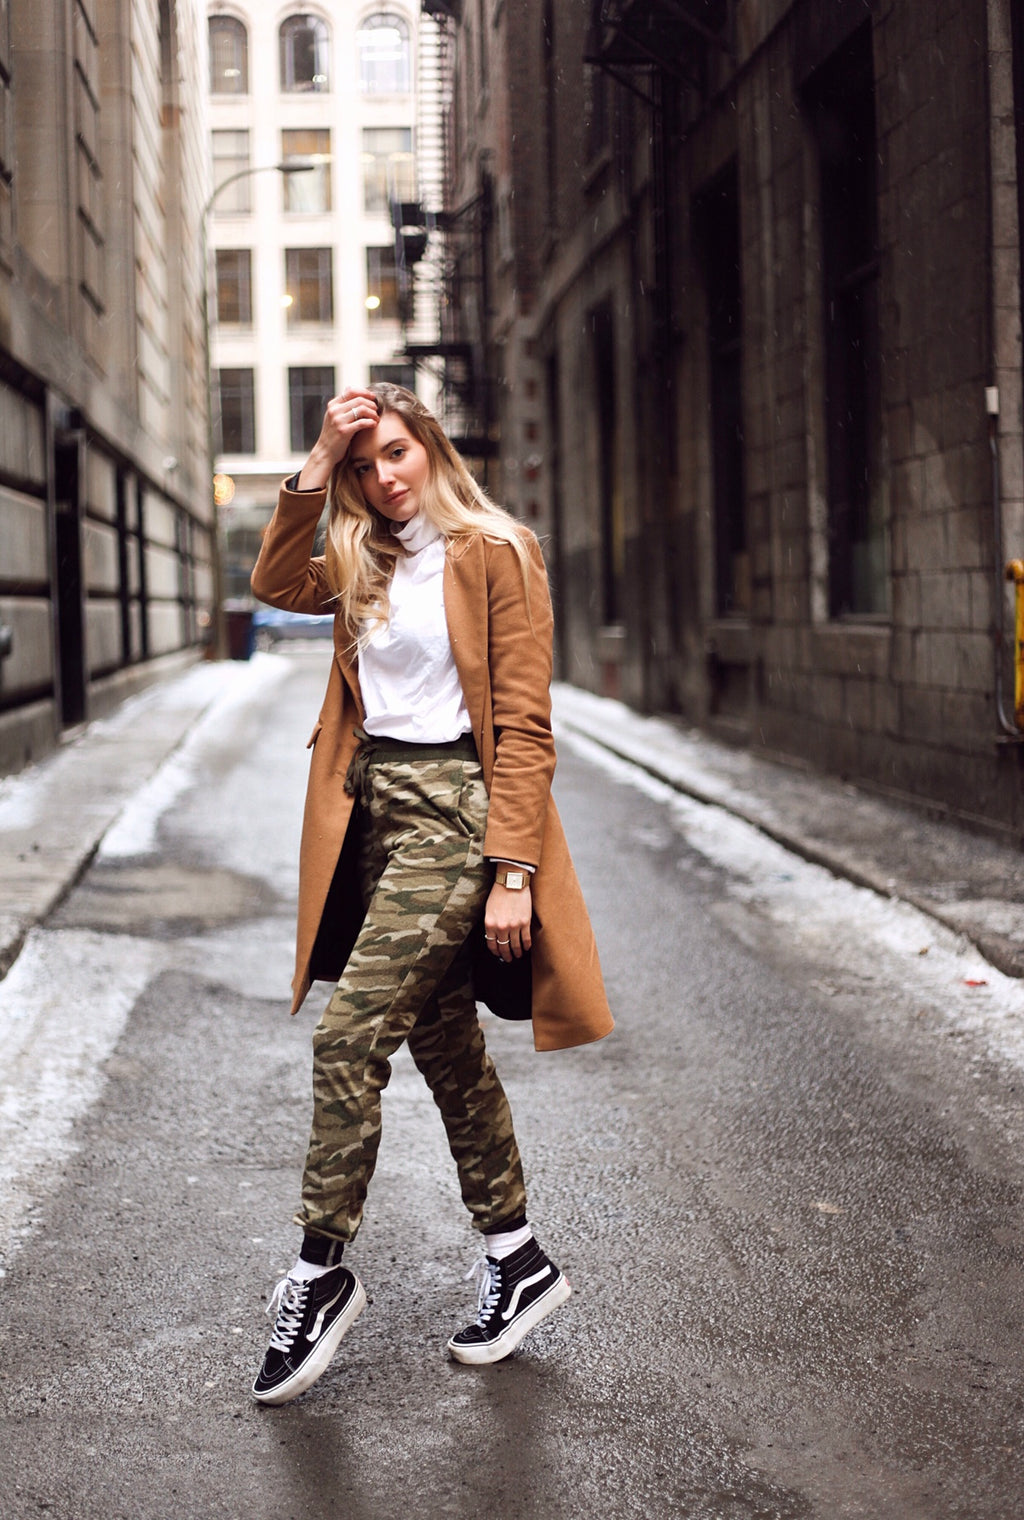 Esly pants-Pants-𝐴𝐿𝑈𝑅𝐸-alurecollection.com-pantalon-army-fashion-freeshipping-livraison-gratuite-womance-bohoo-oycee-fashionova-alure-collection